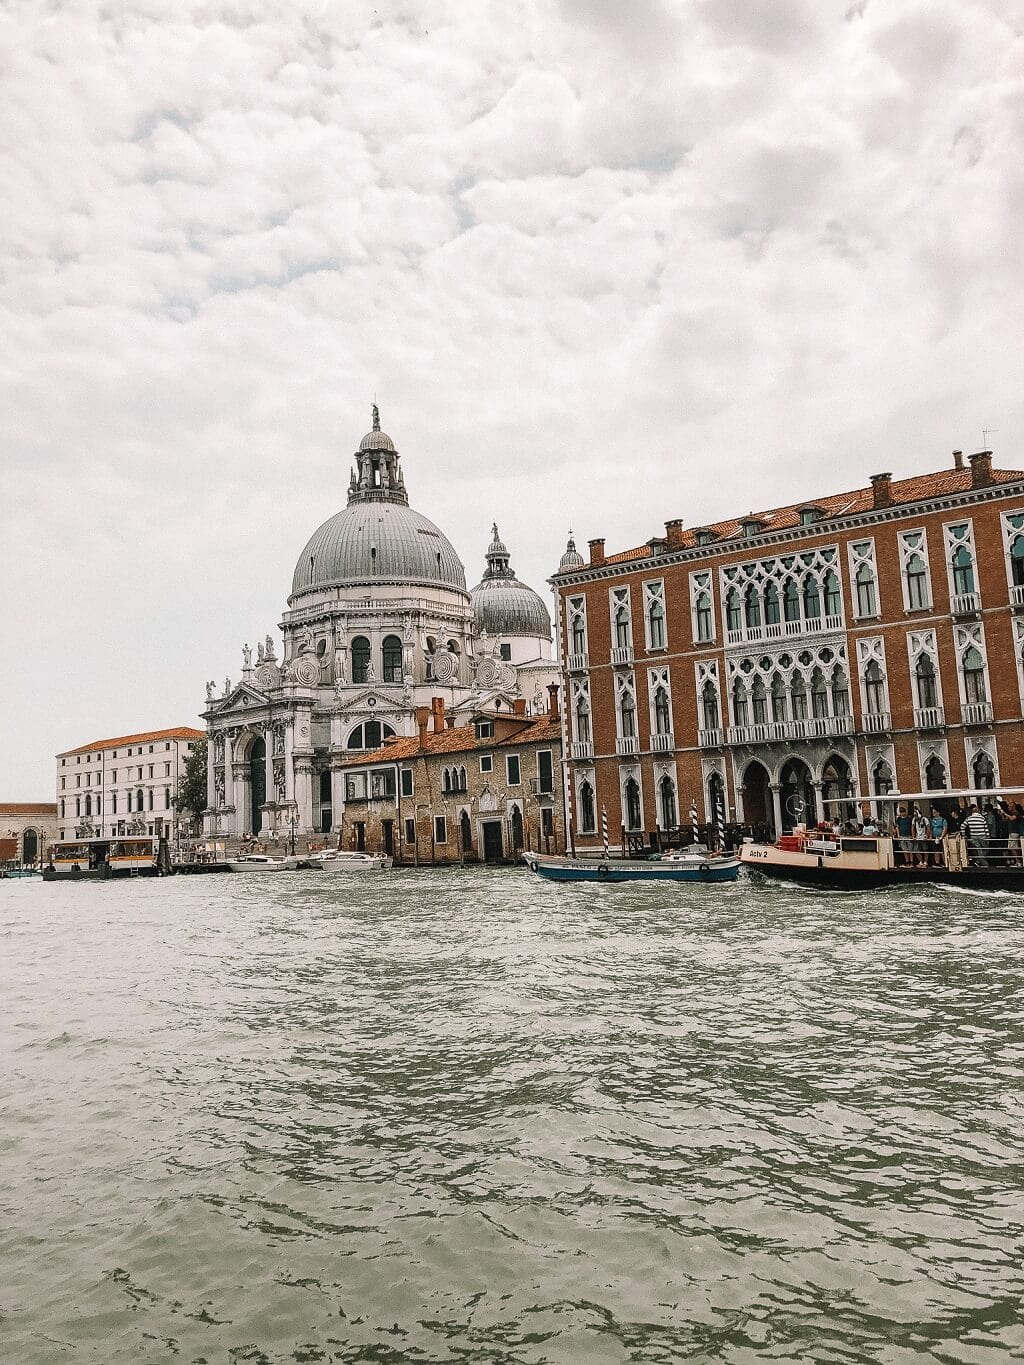 gritti palace in venice